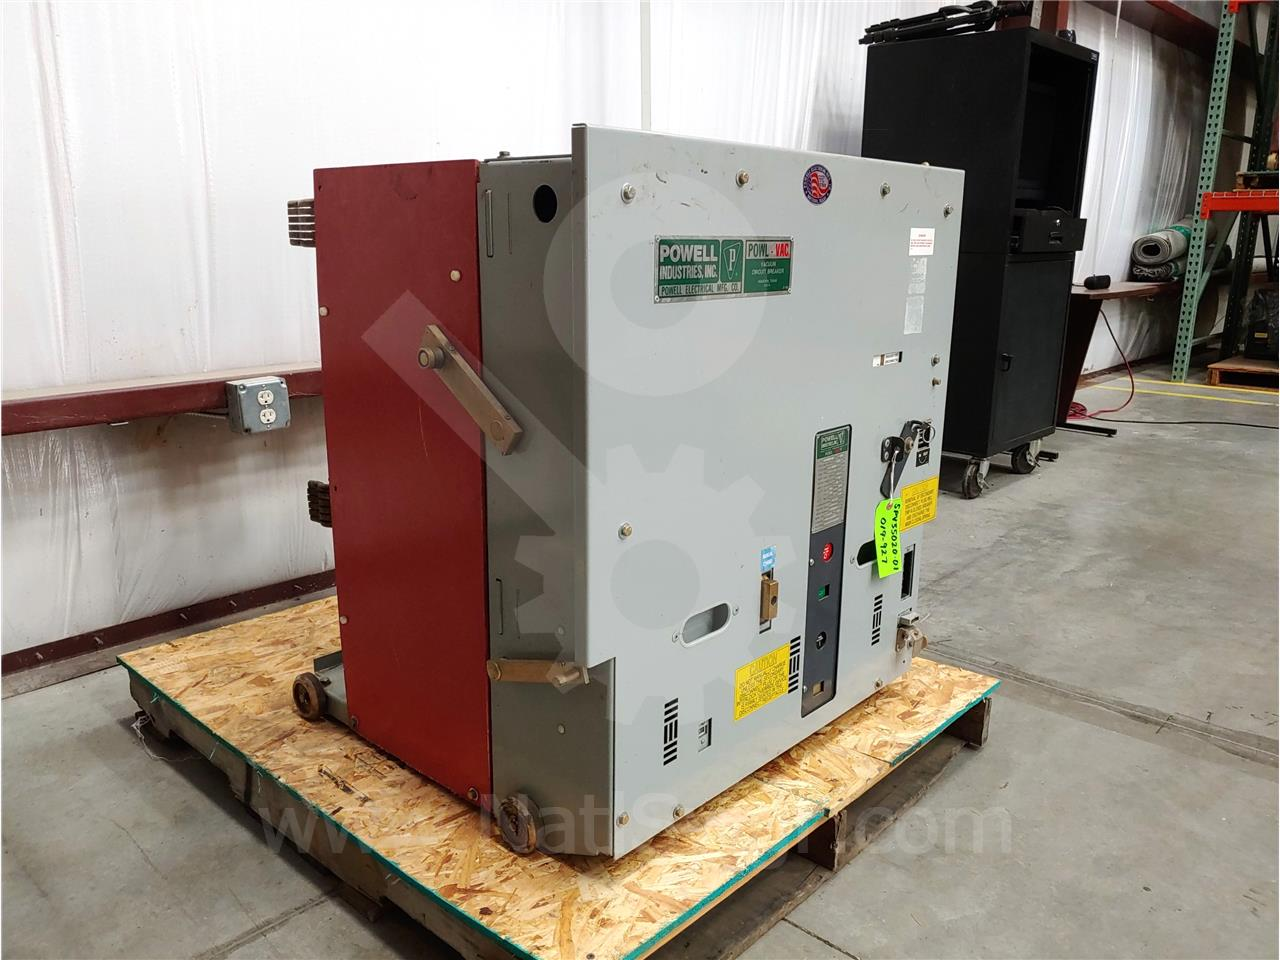 Powell Electric 2000A PWL 05PV0350 PVS-3 (5PV350)